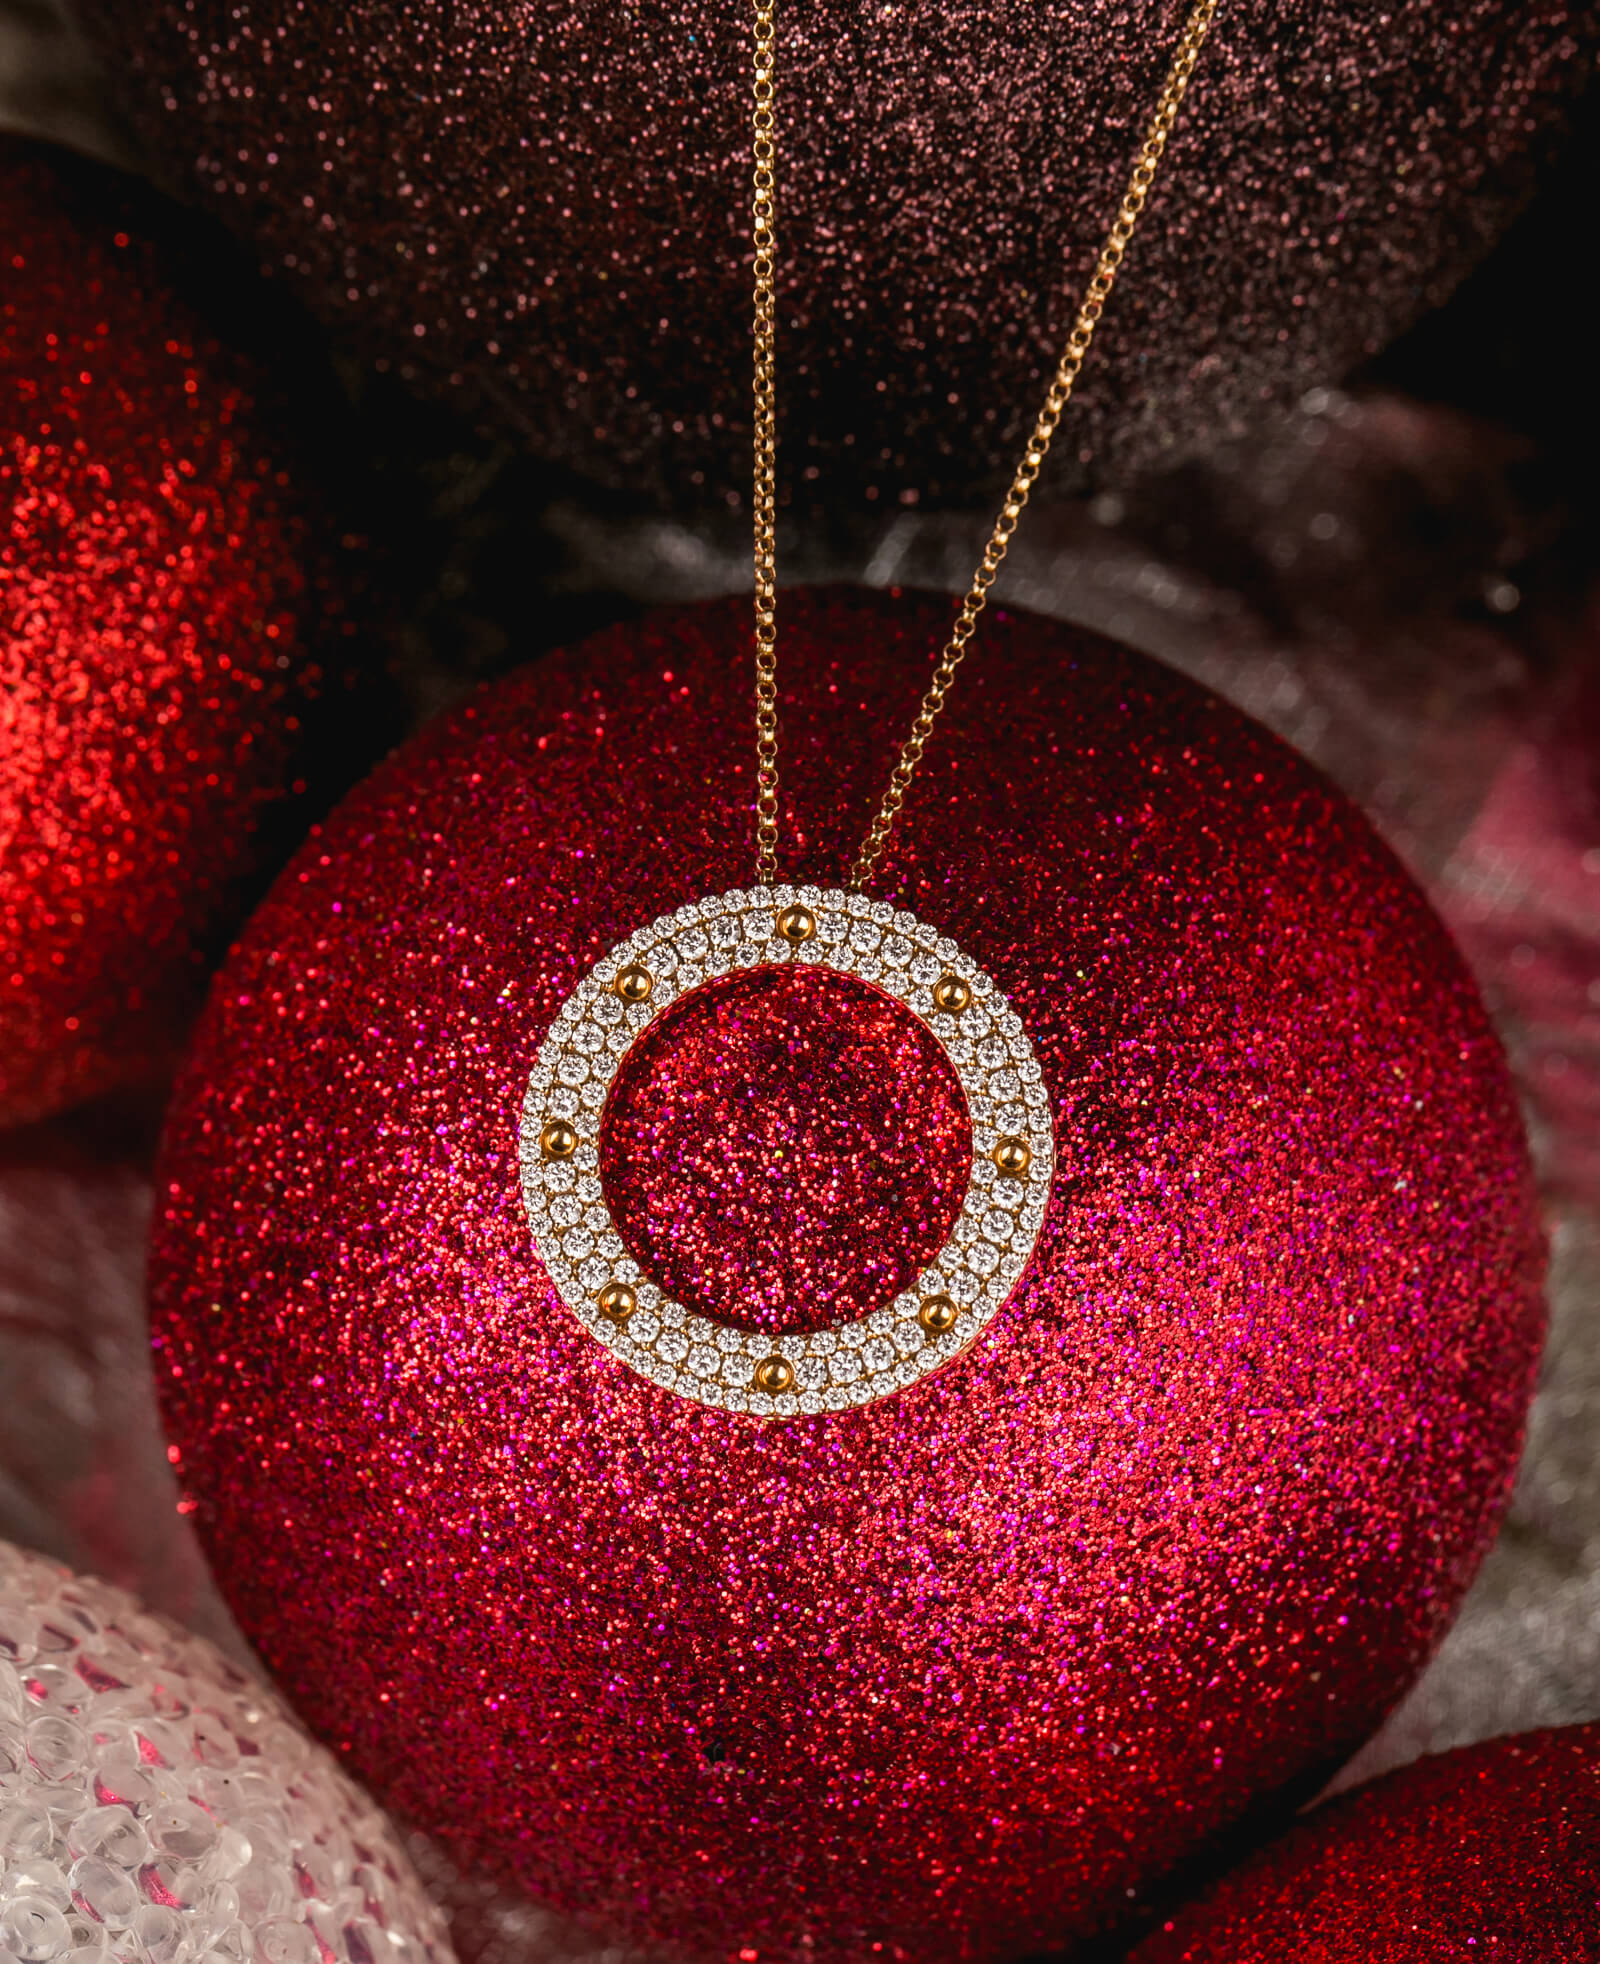 Roberto Coin jewelry - Embrace the season of giving